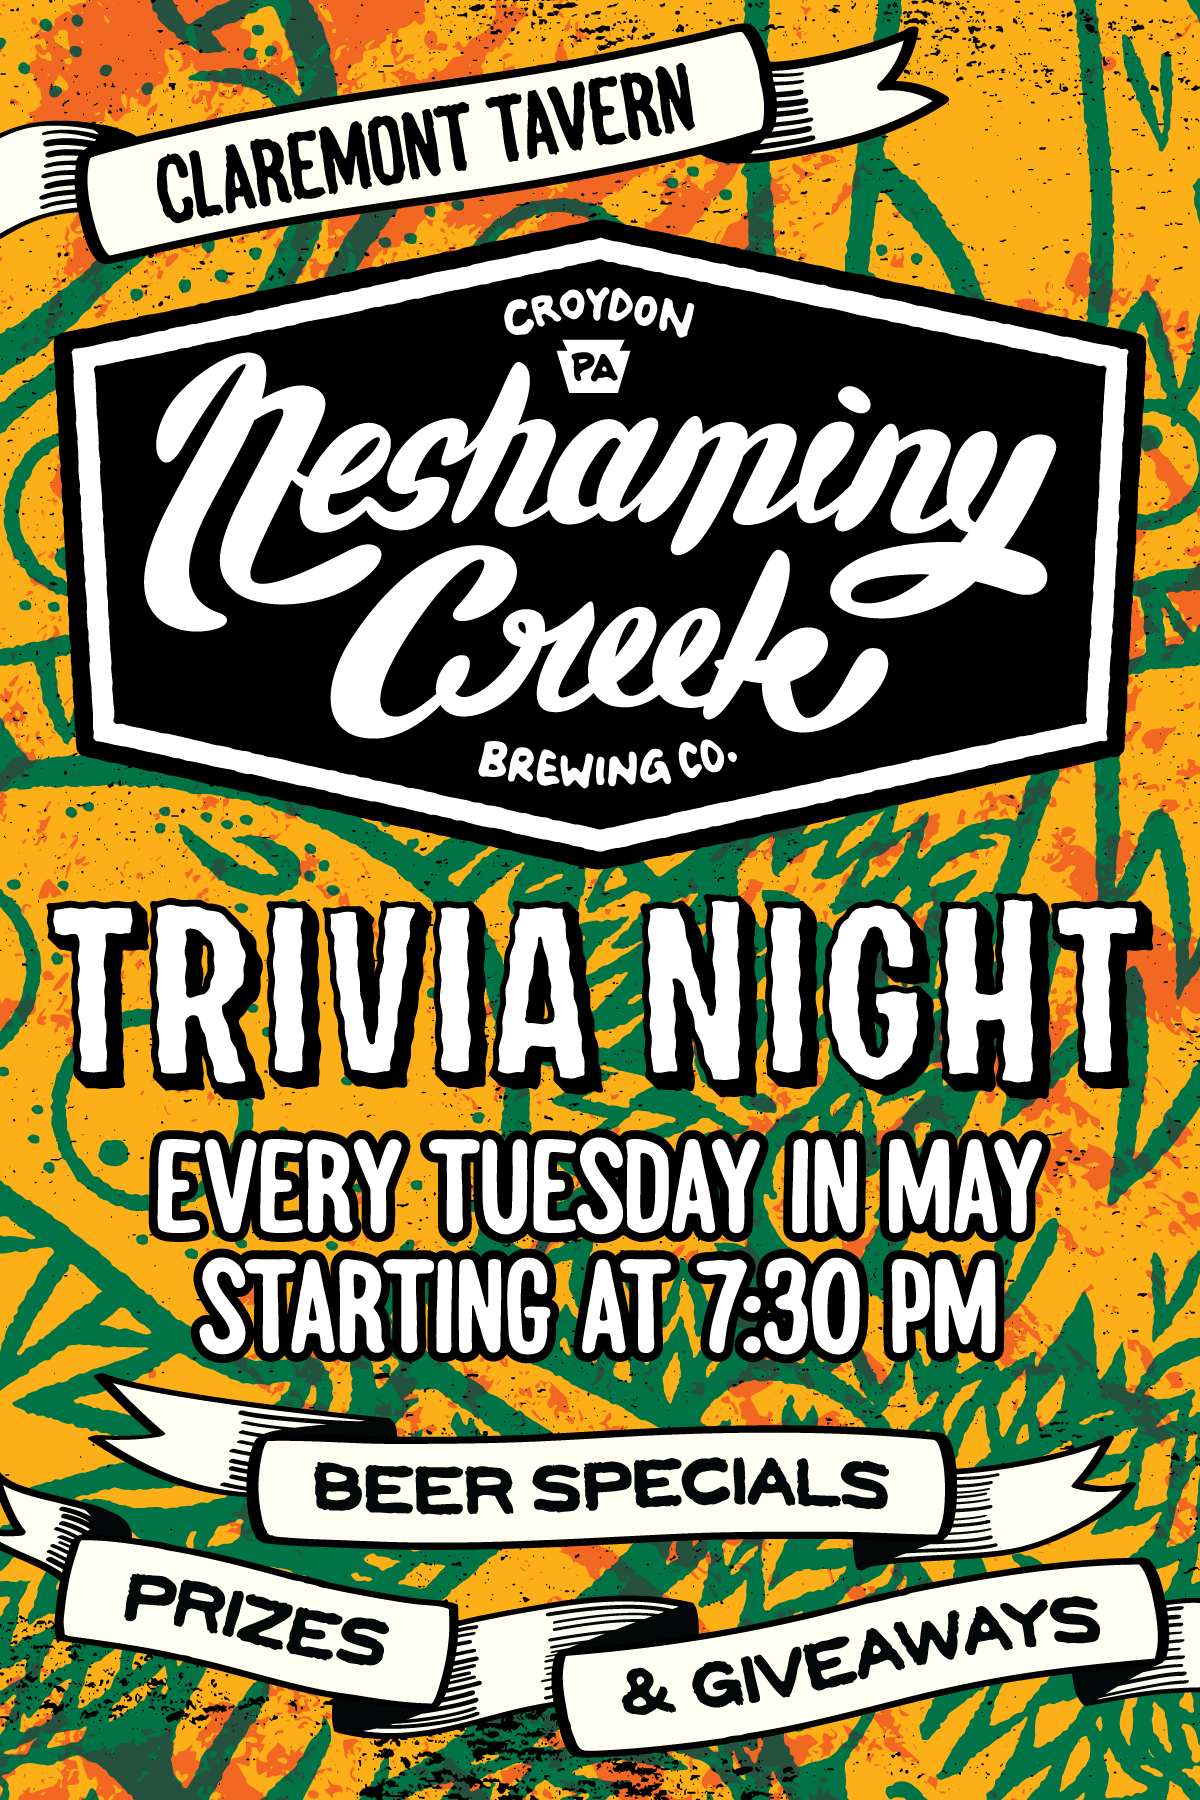 claremont-tavern_NCBC-may-trivia-night-posters_04-20-18